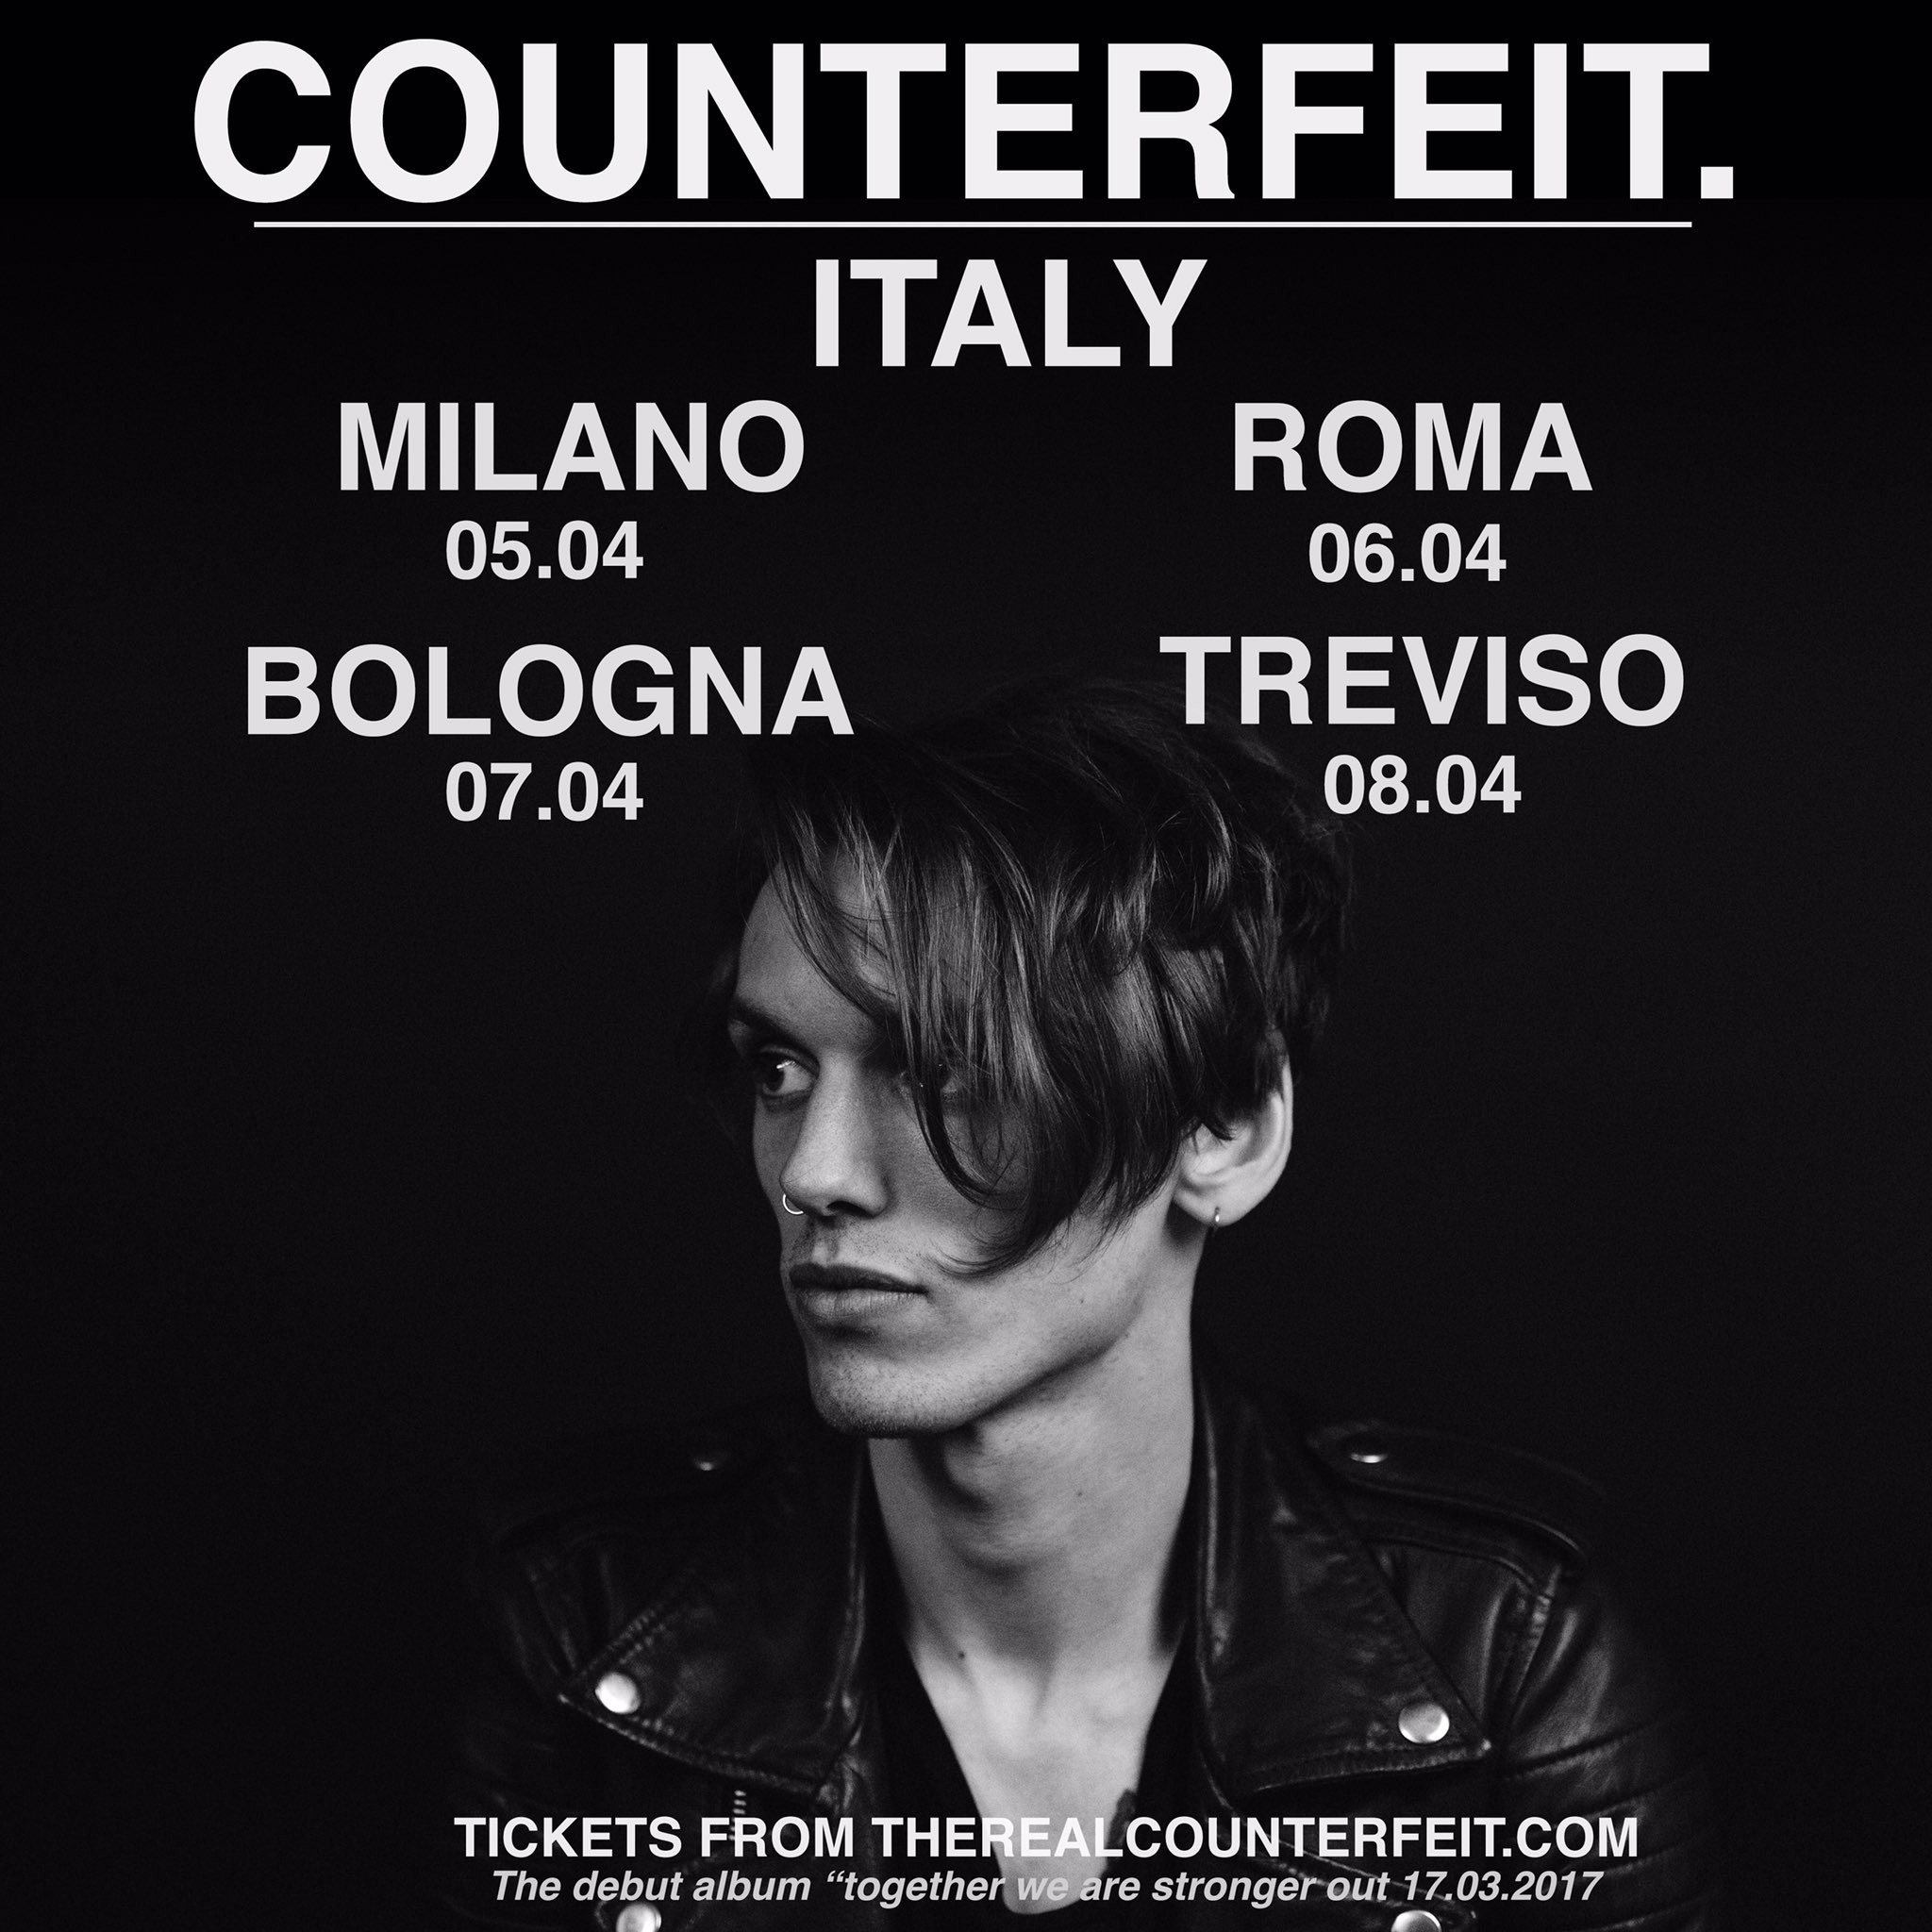 Italy you have 5 days left. GET IT! �� tickets from: https://t.co/9jRmR0sTUI https://t.co/BtFdZVoZwn